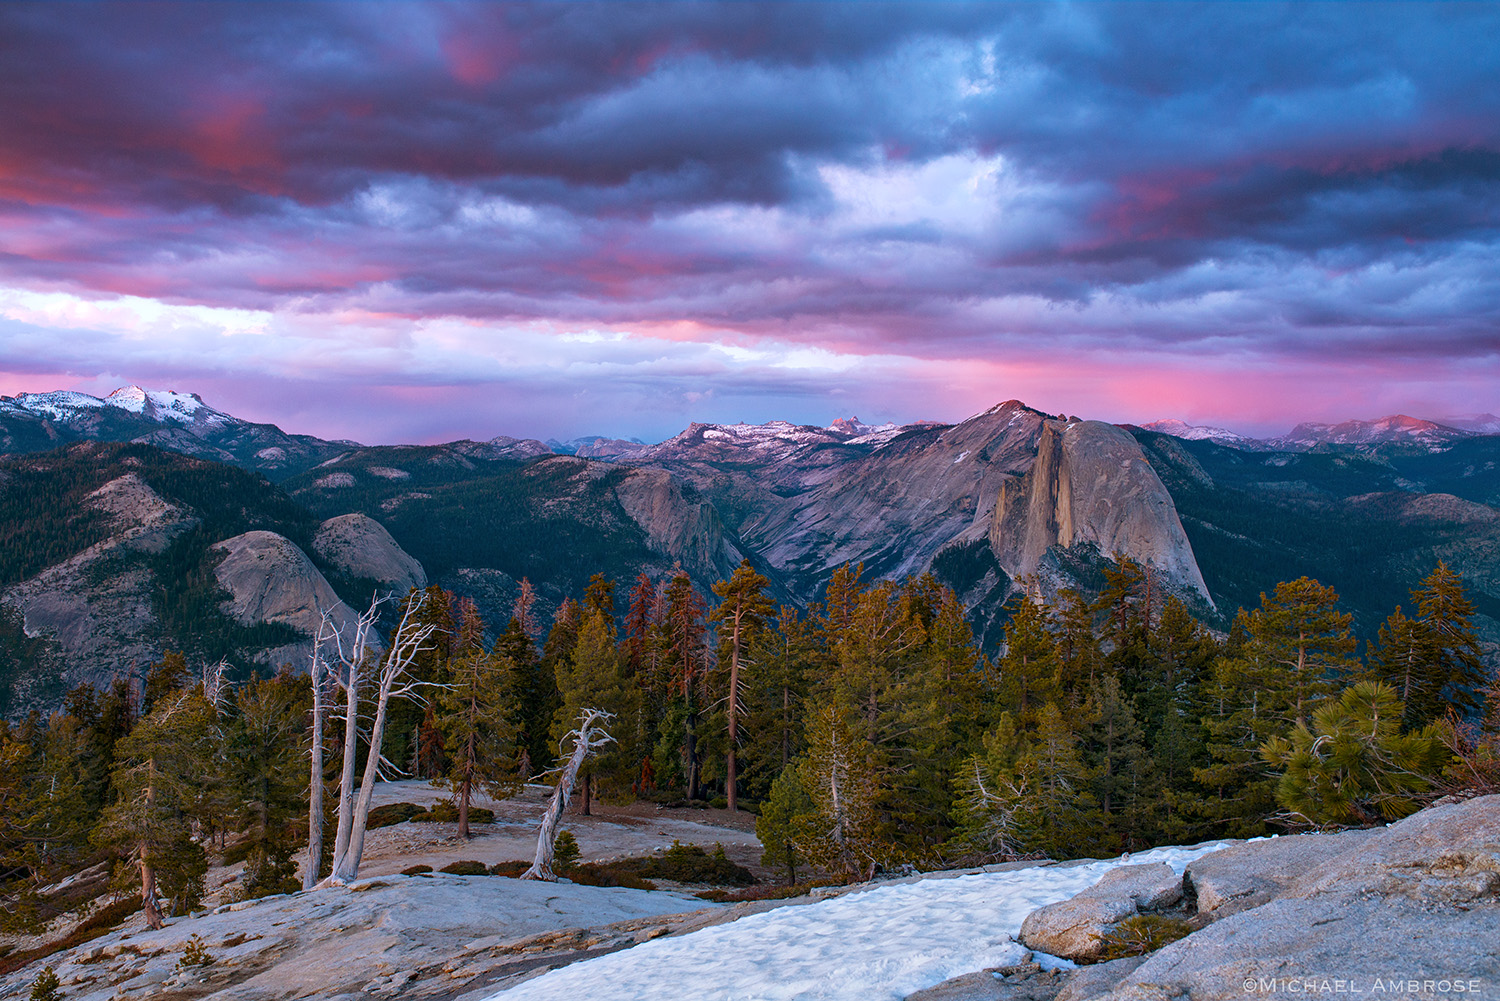 From Sentinel Dome one views the snowy Sierra Nevada crest, including El  Half Dome, all in Yosemite National Park.